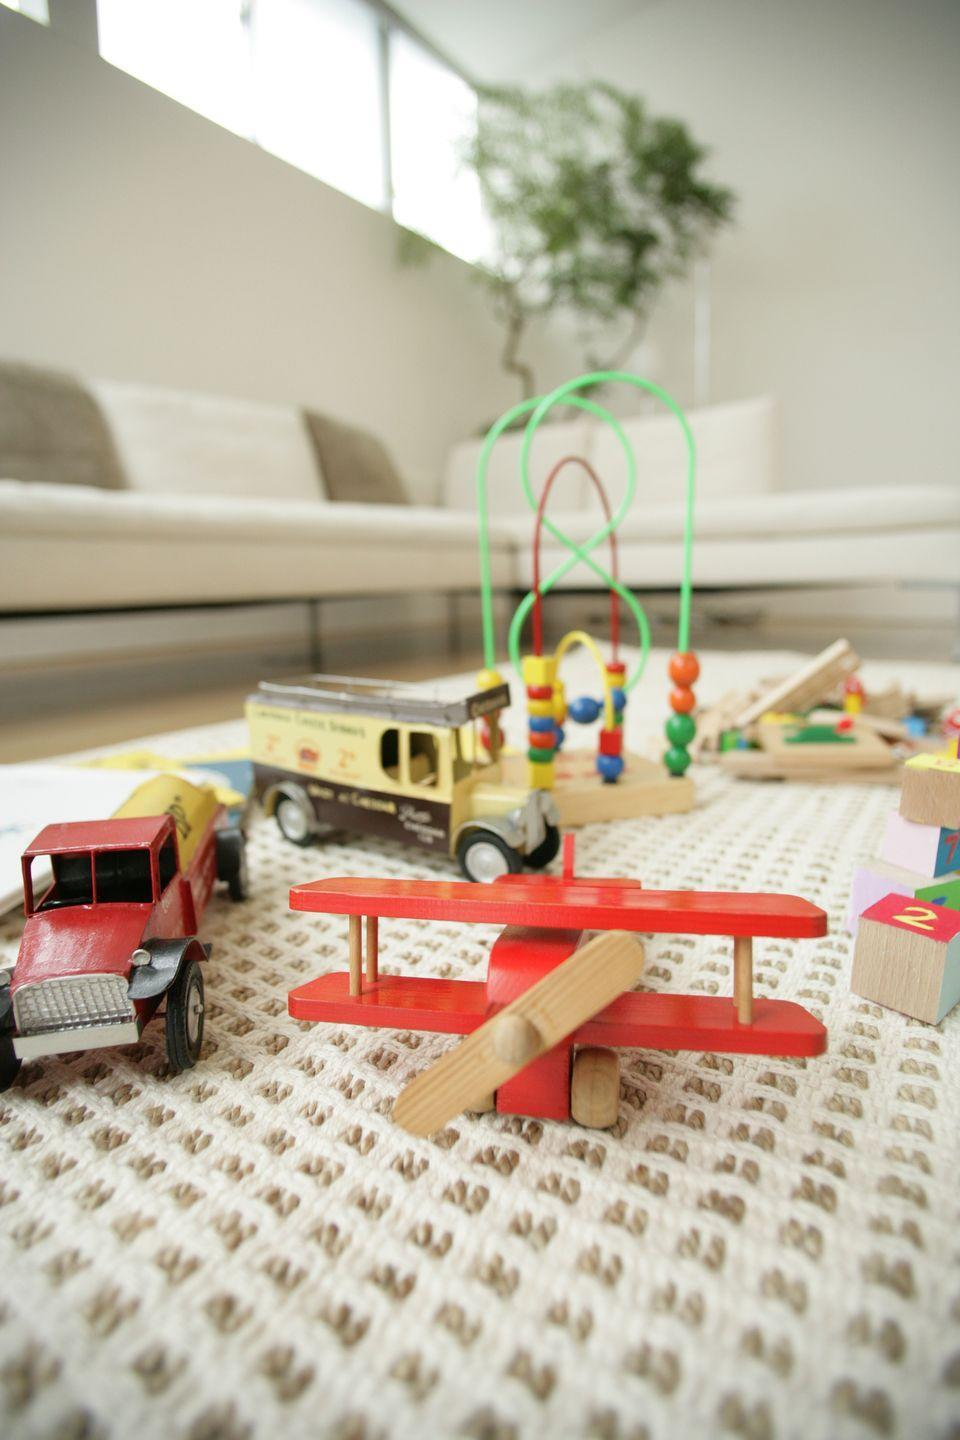 """<p>""""When your little ones play with Legos, figurines, or other multi-piece toys, start by laying out a large blanket or bed sheet first,"""" suggest Joy Cho, founder of <em><a href=""""http://ohjoy.blogs.com/"""" rel=""""nofollow noopener"""" target=""""_blank"""" data-ylk=""""slk:Oh Joy!"""" class=""""link rapid-noclick-resp"""">Oh Joy!</a></em>. That way, when it's time to clean up, you can bring the ends of the blanket together and quickly dump the toys back into their storage bucket. </p>"""